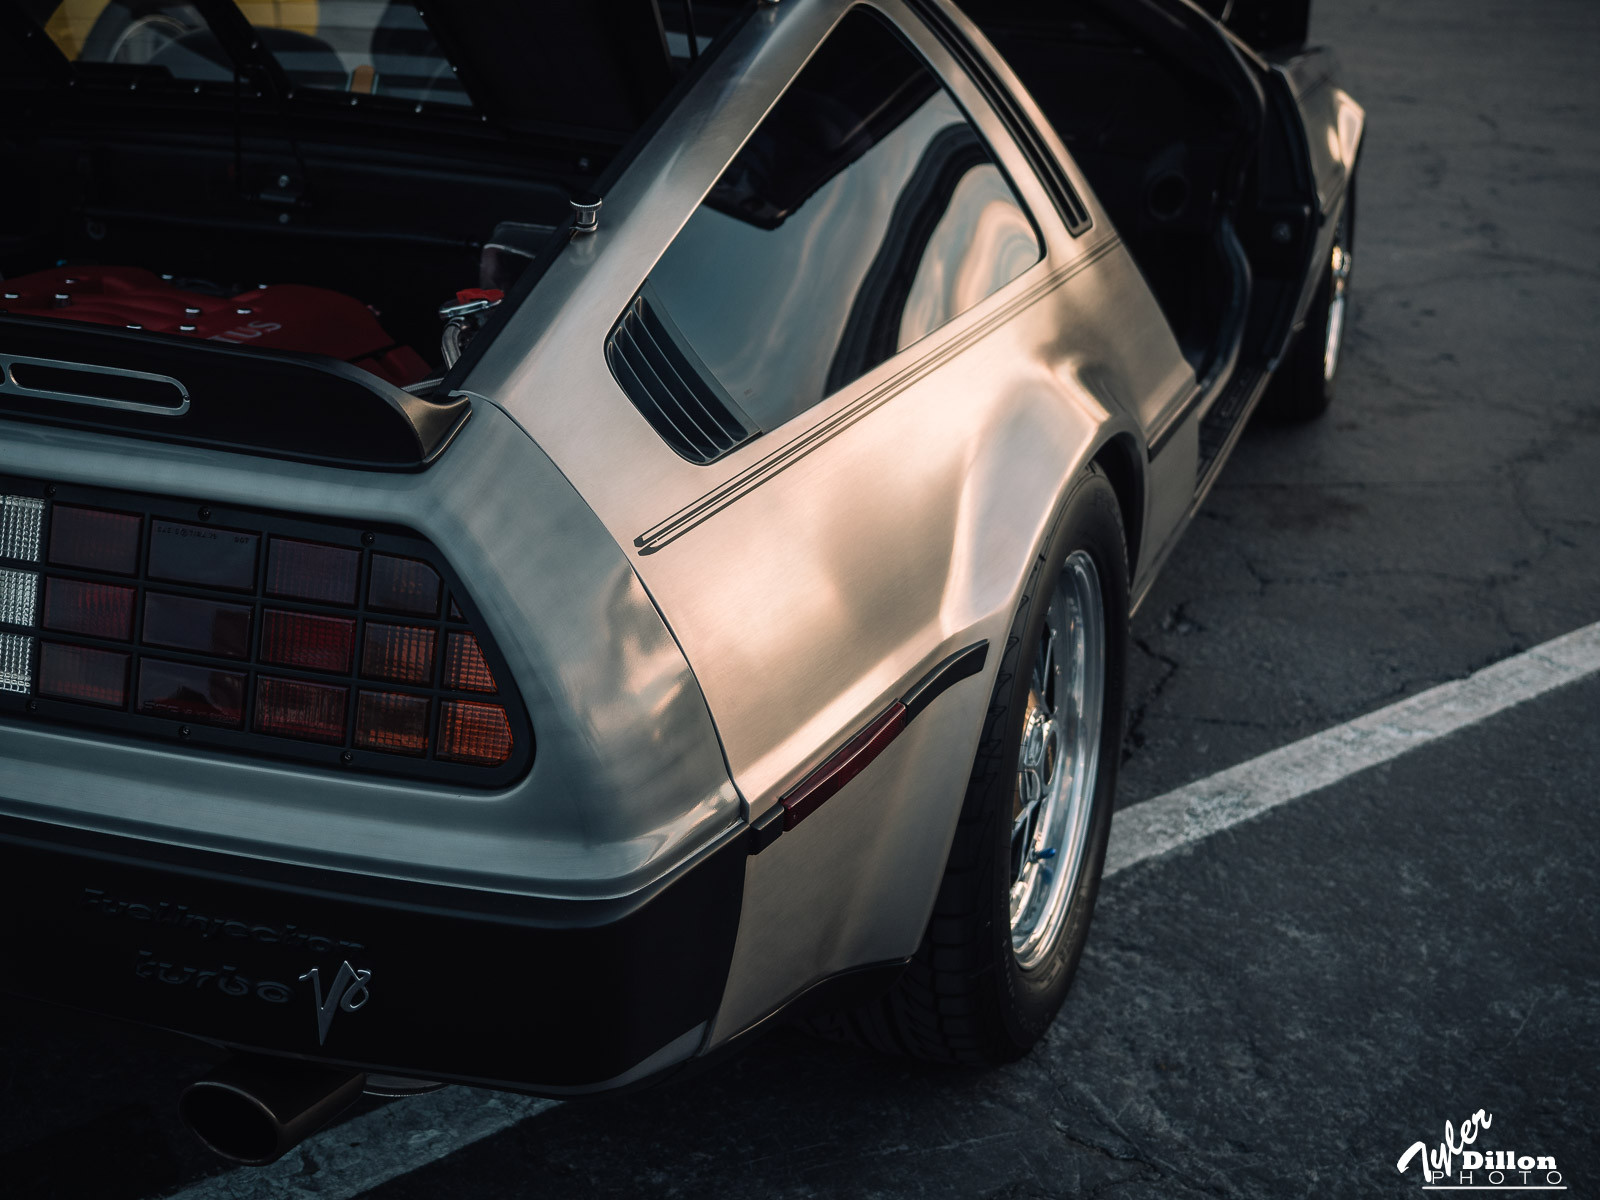 delorean-5.jpg